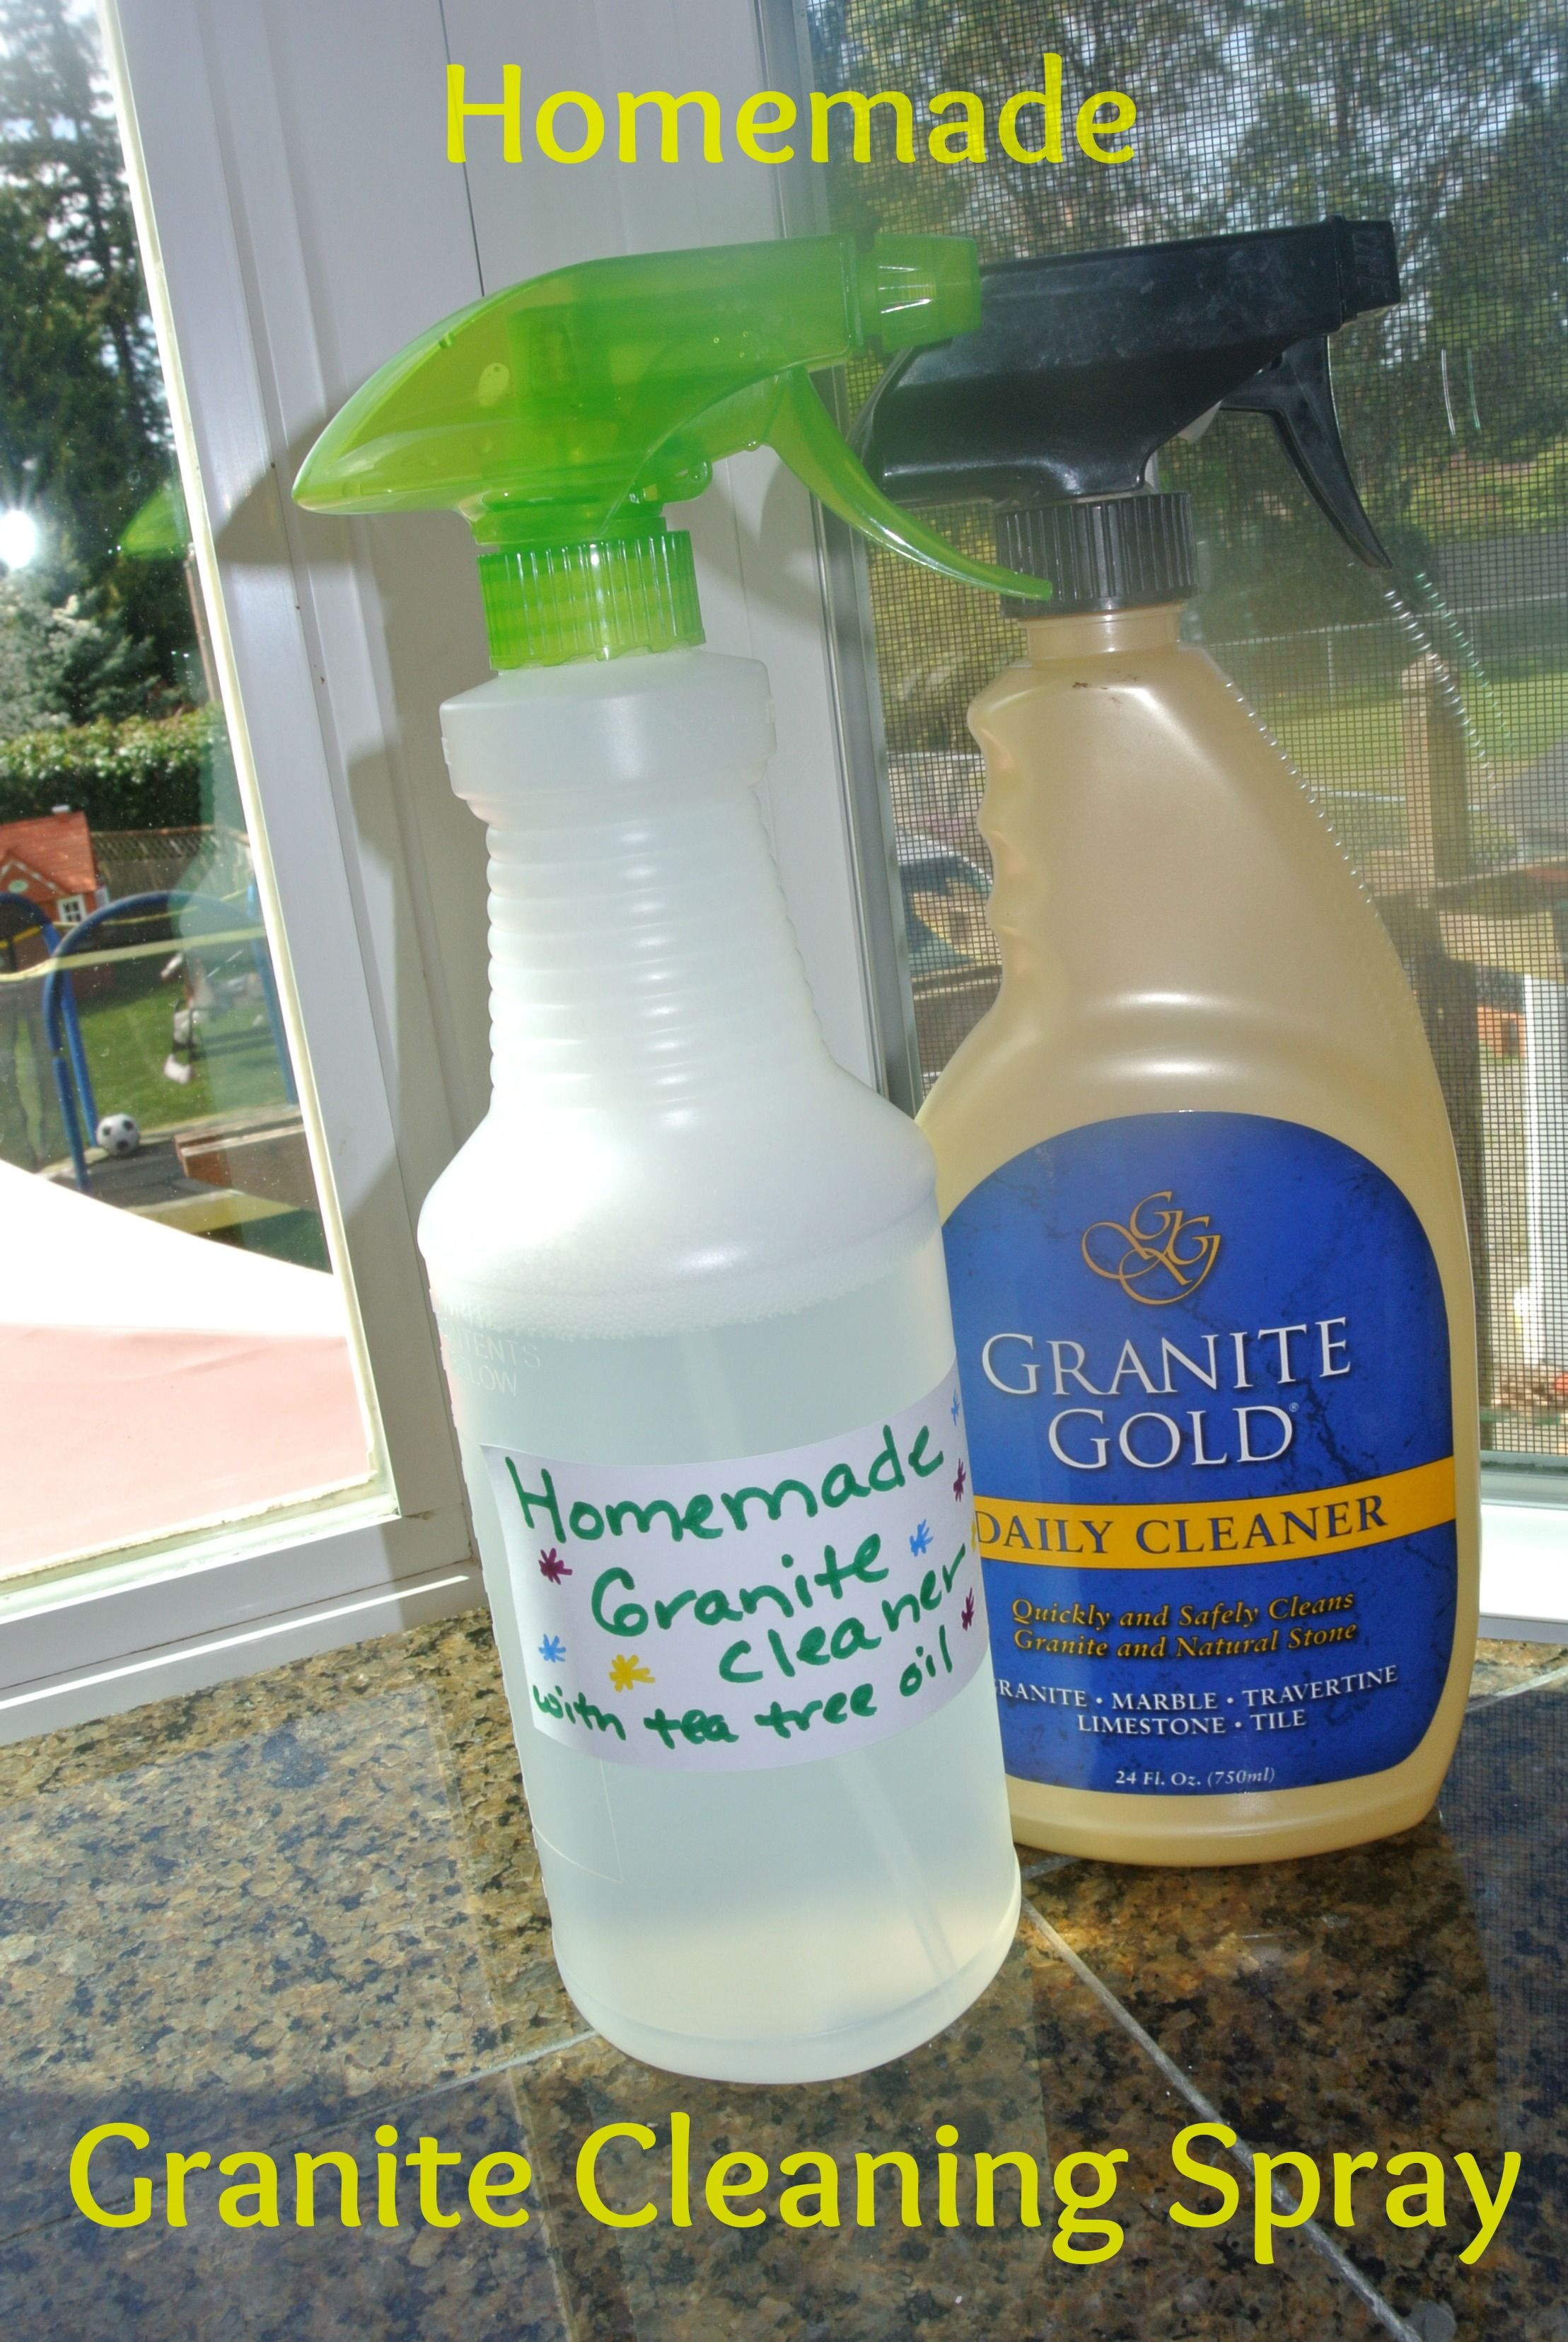 homemade granite cleaning spray - diy #granite #homemade #cleaning